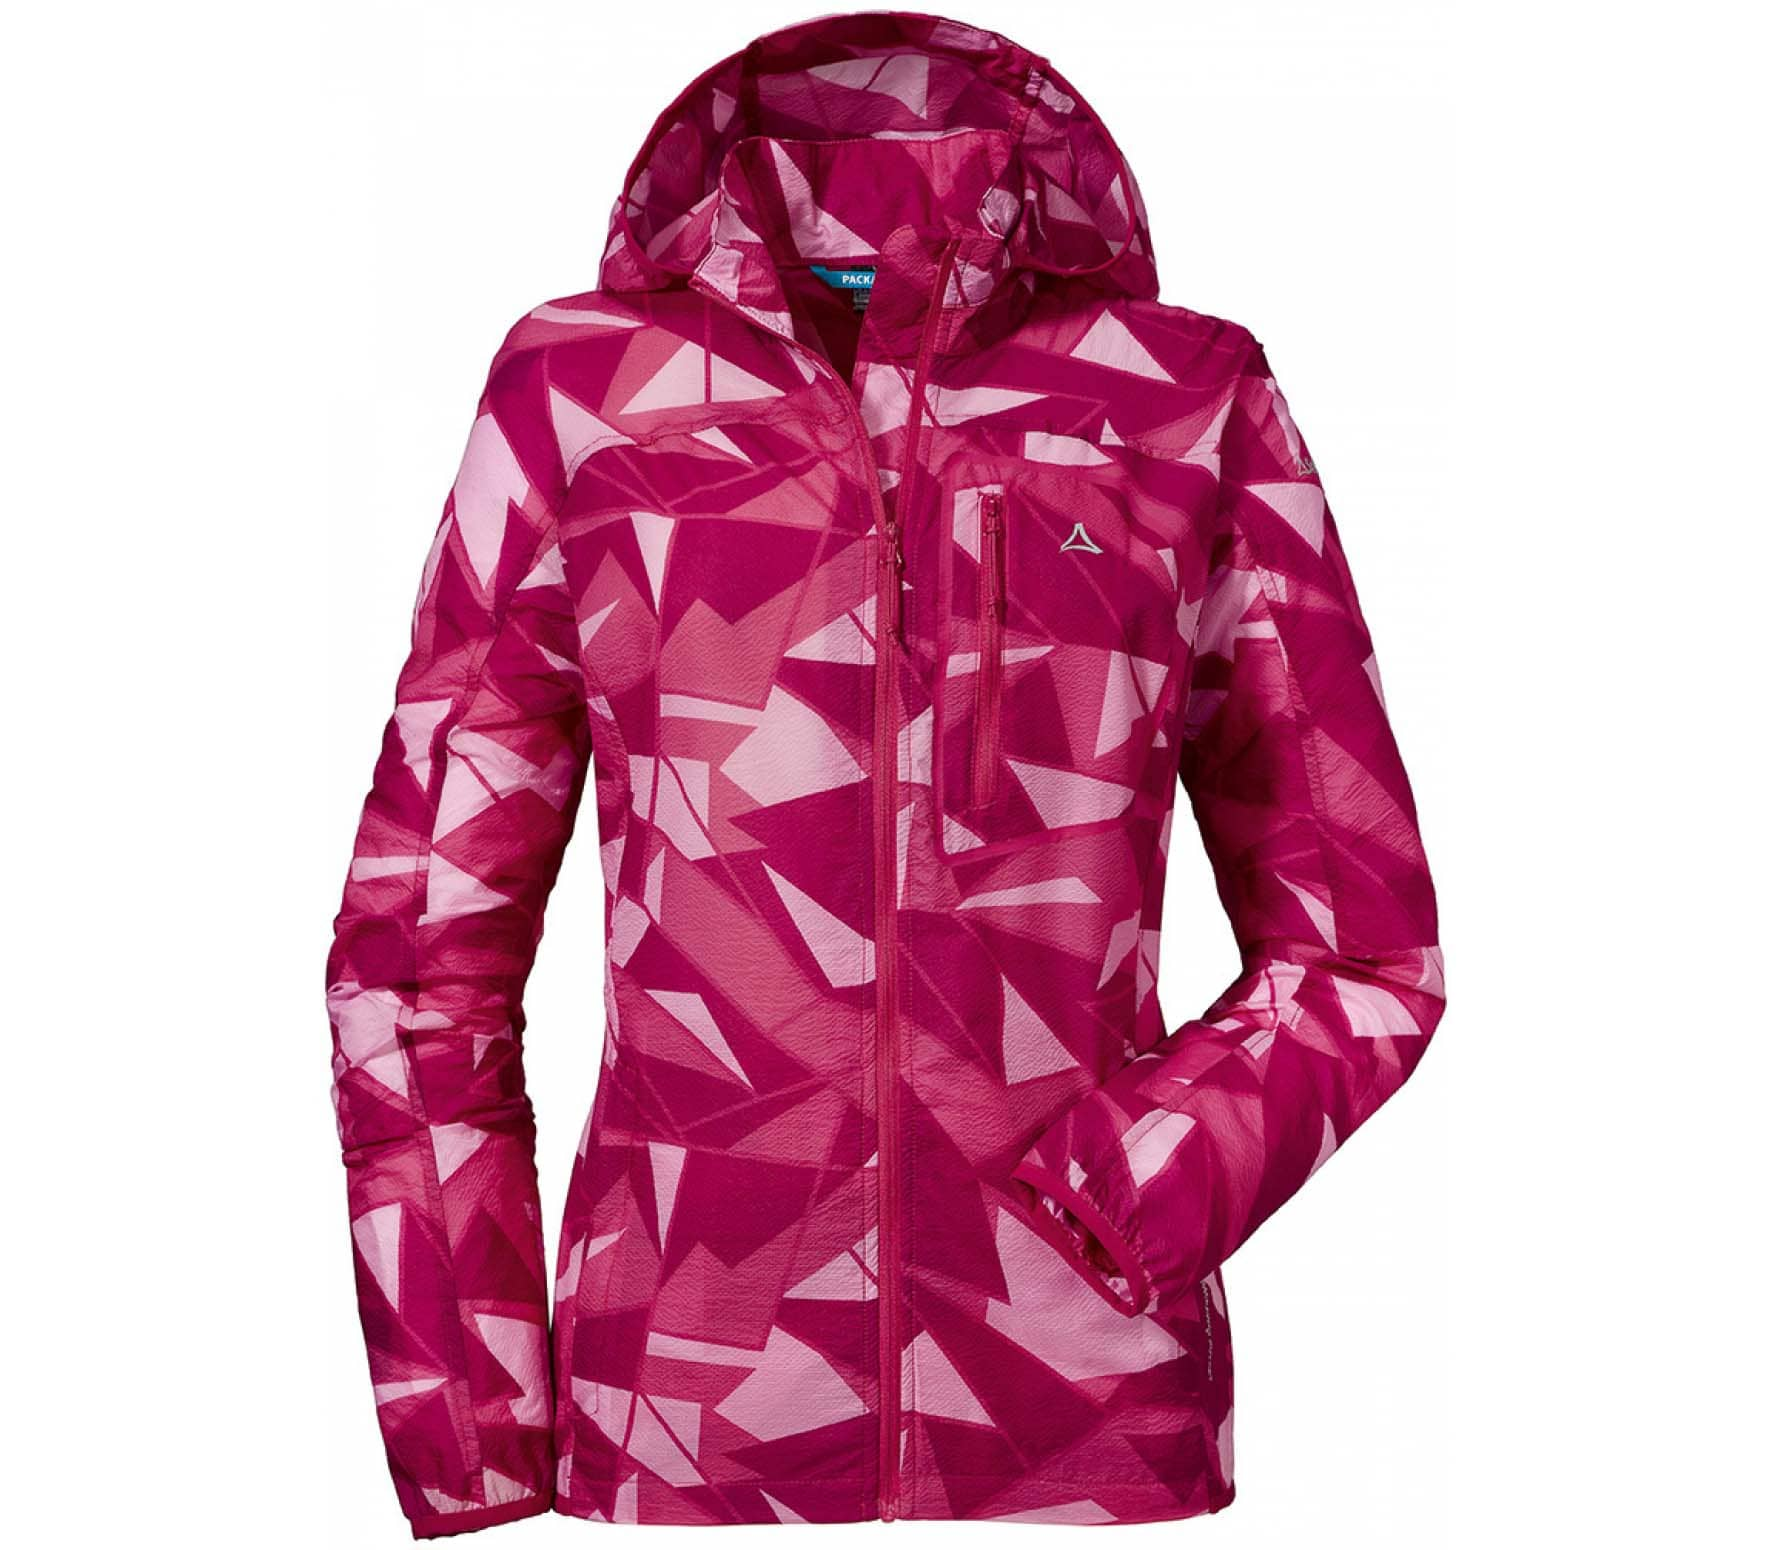 new design official site wholesale outlet Schöffel - AOP L women's windbreaker (pink)